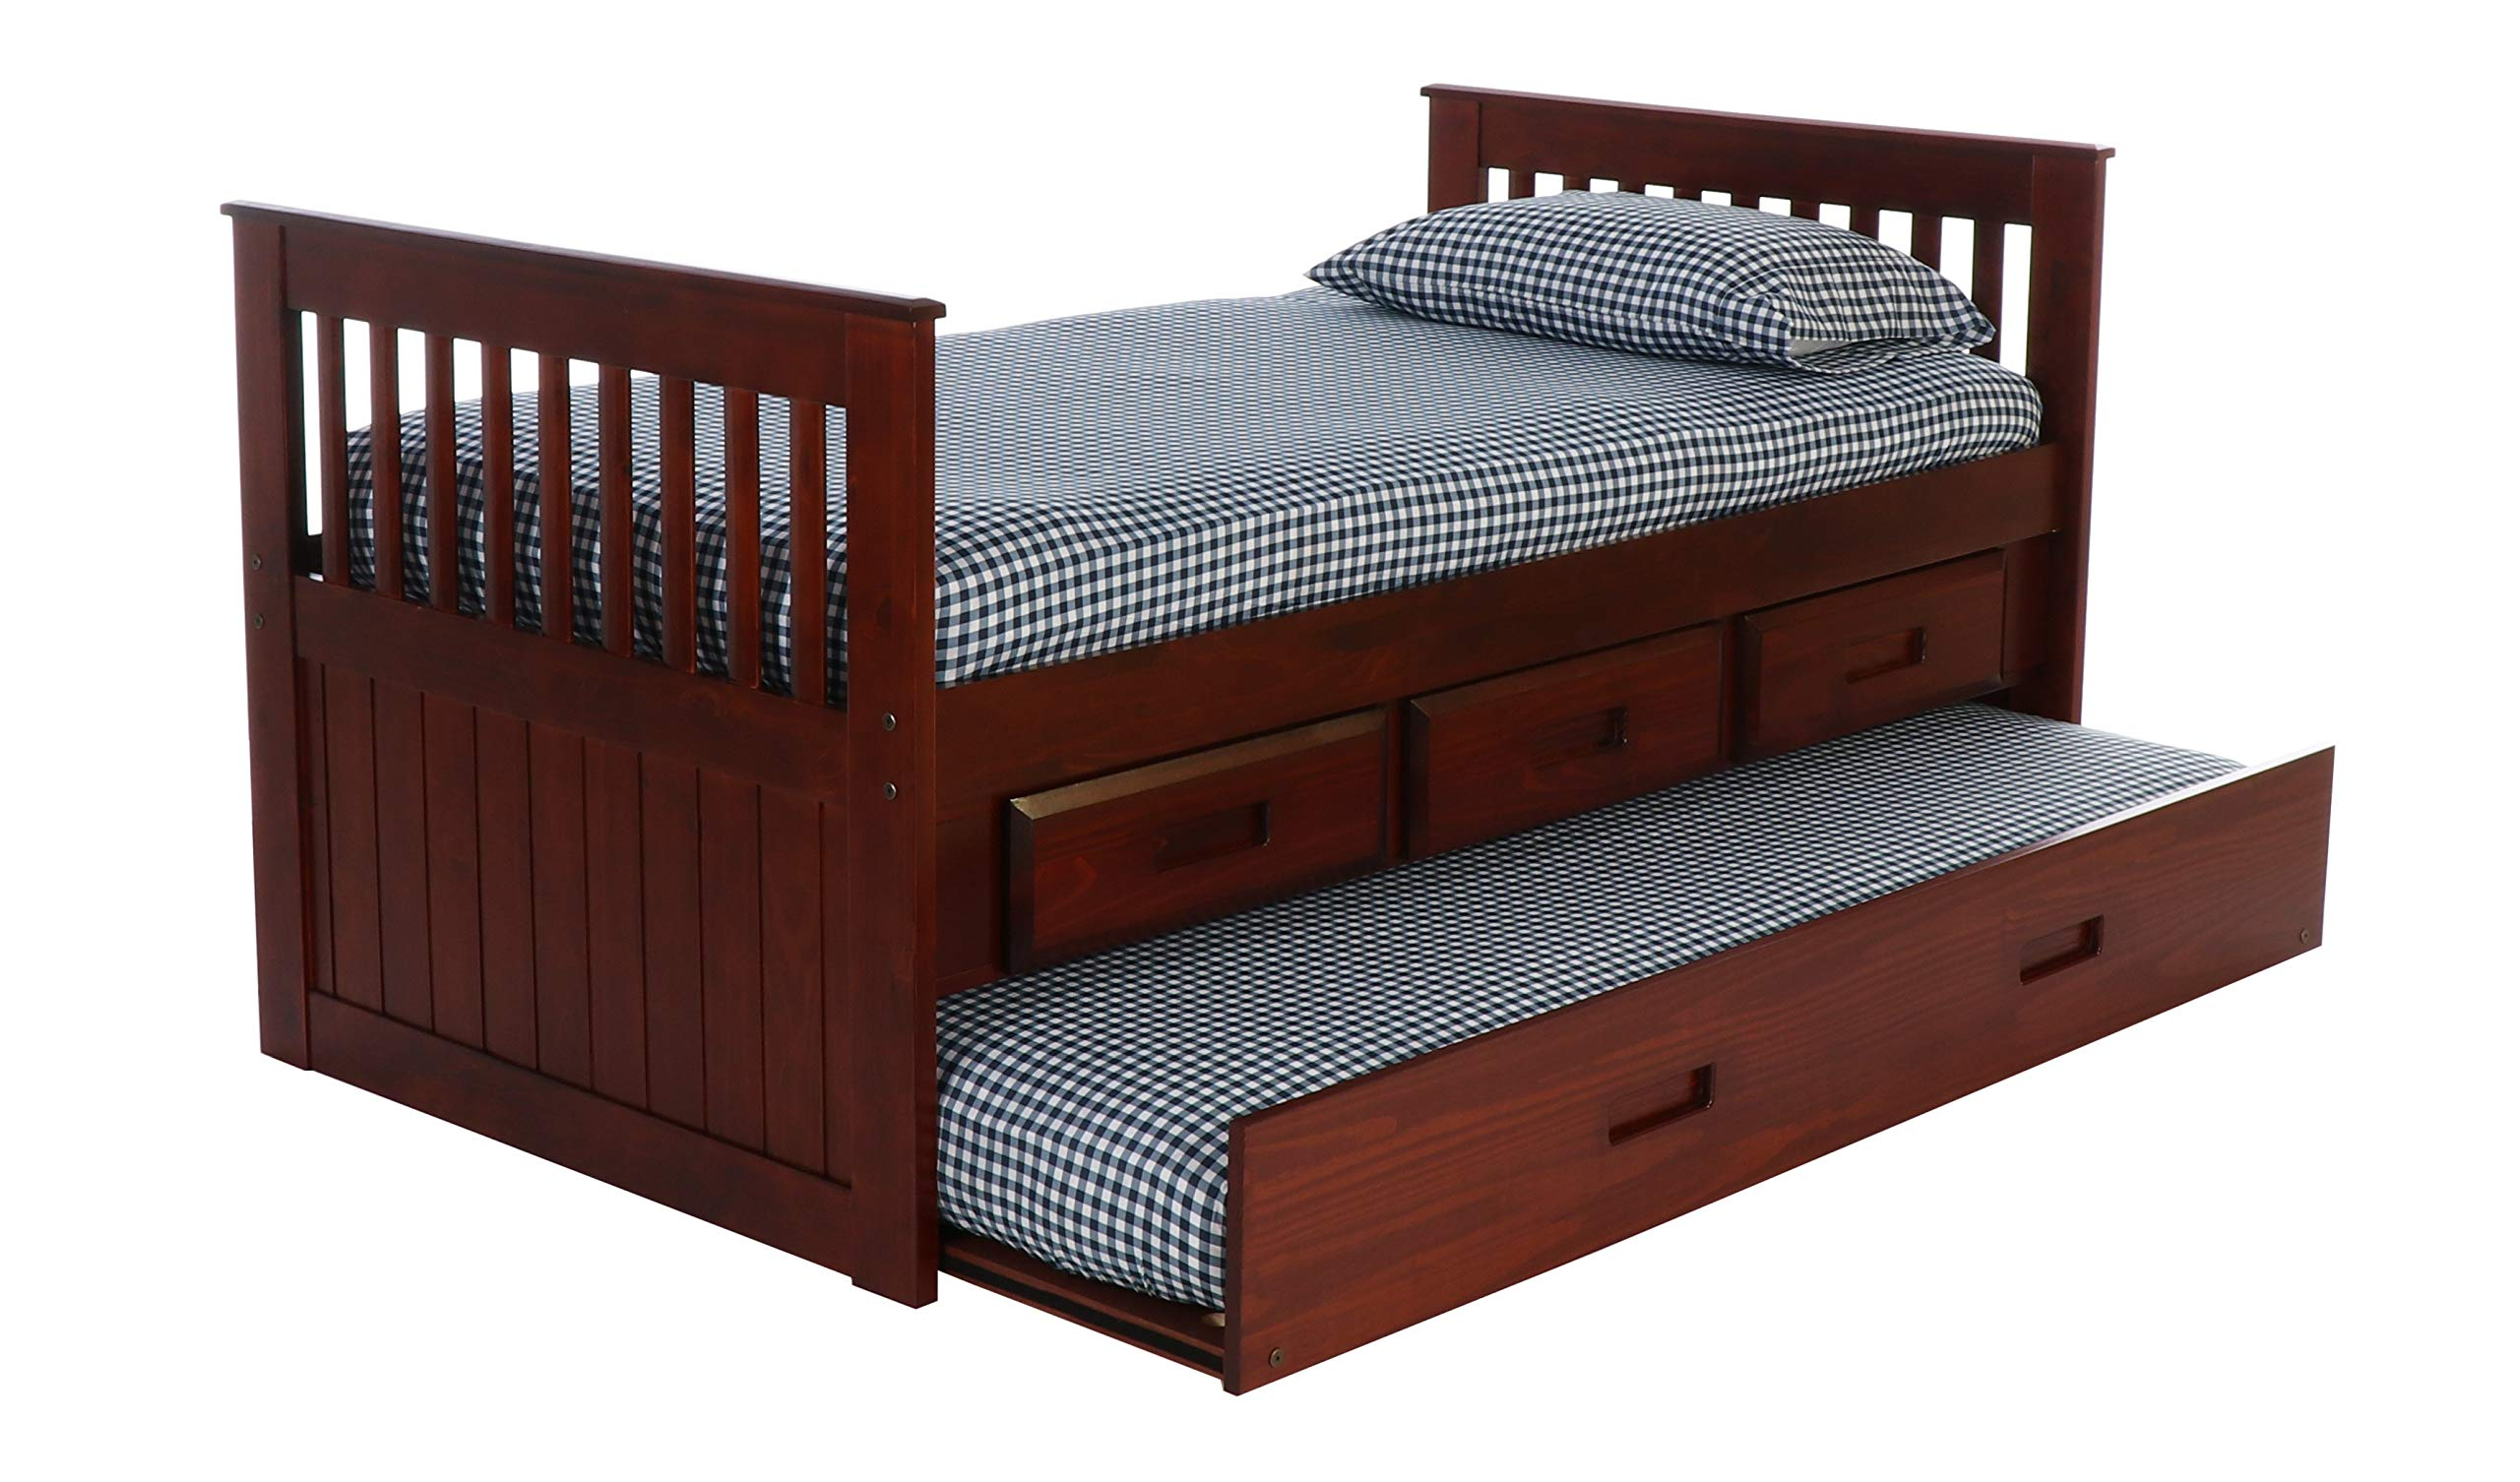 Discovery World Furniture with 3 Drawers and Twin Trundle Rake Bed, Merlot